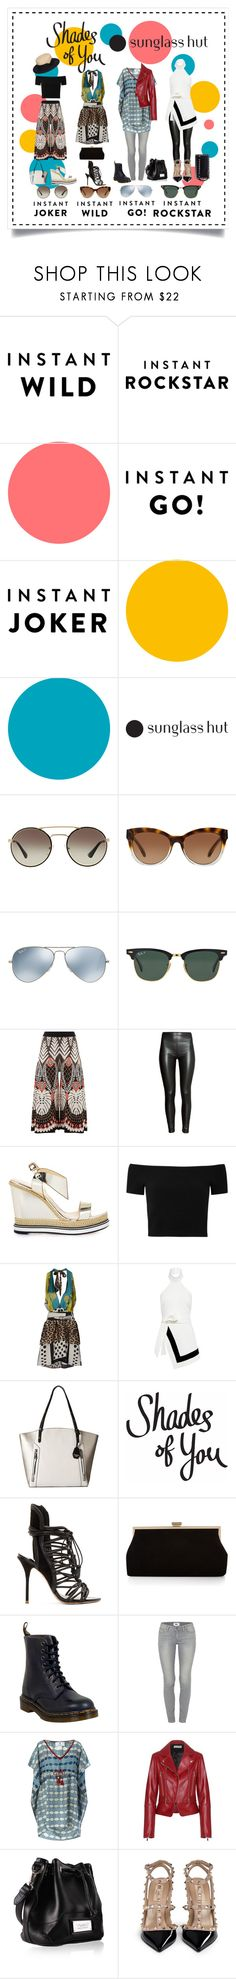 """Shades of You: Sunglass Hut Contest Entry"" by aquarella ❤ liked on Polyvore featuring Prada, Michael Kors, Ray-Ban, Temperley London, H&M, Nicholas Kirkwood, Alice + Olivia, SHI 4, Finders Keepers and Jessica Simpson"